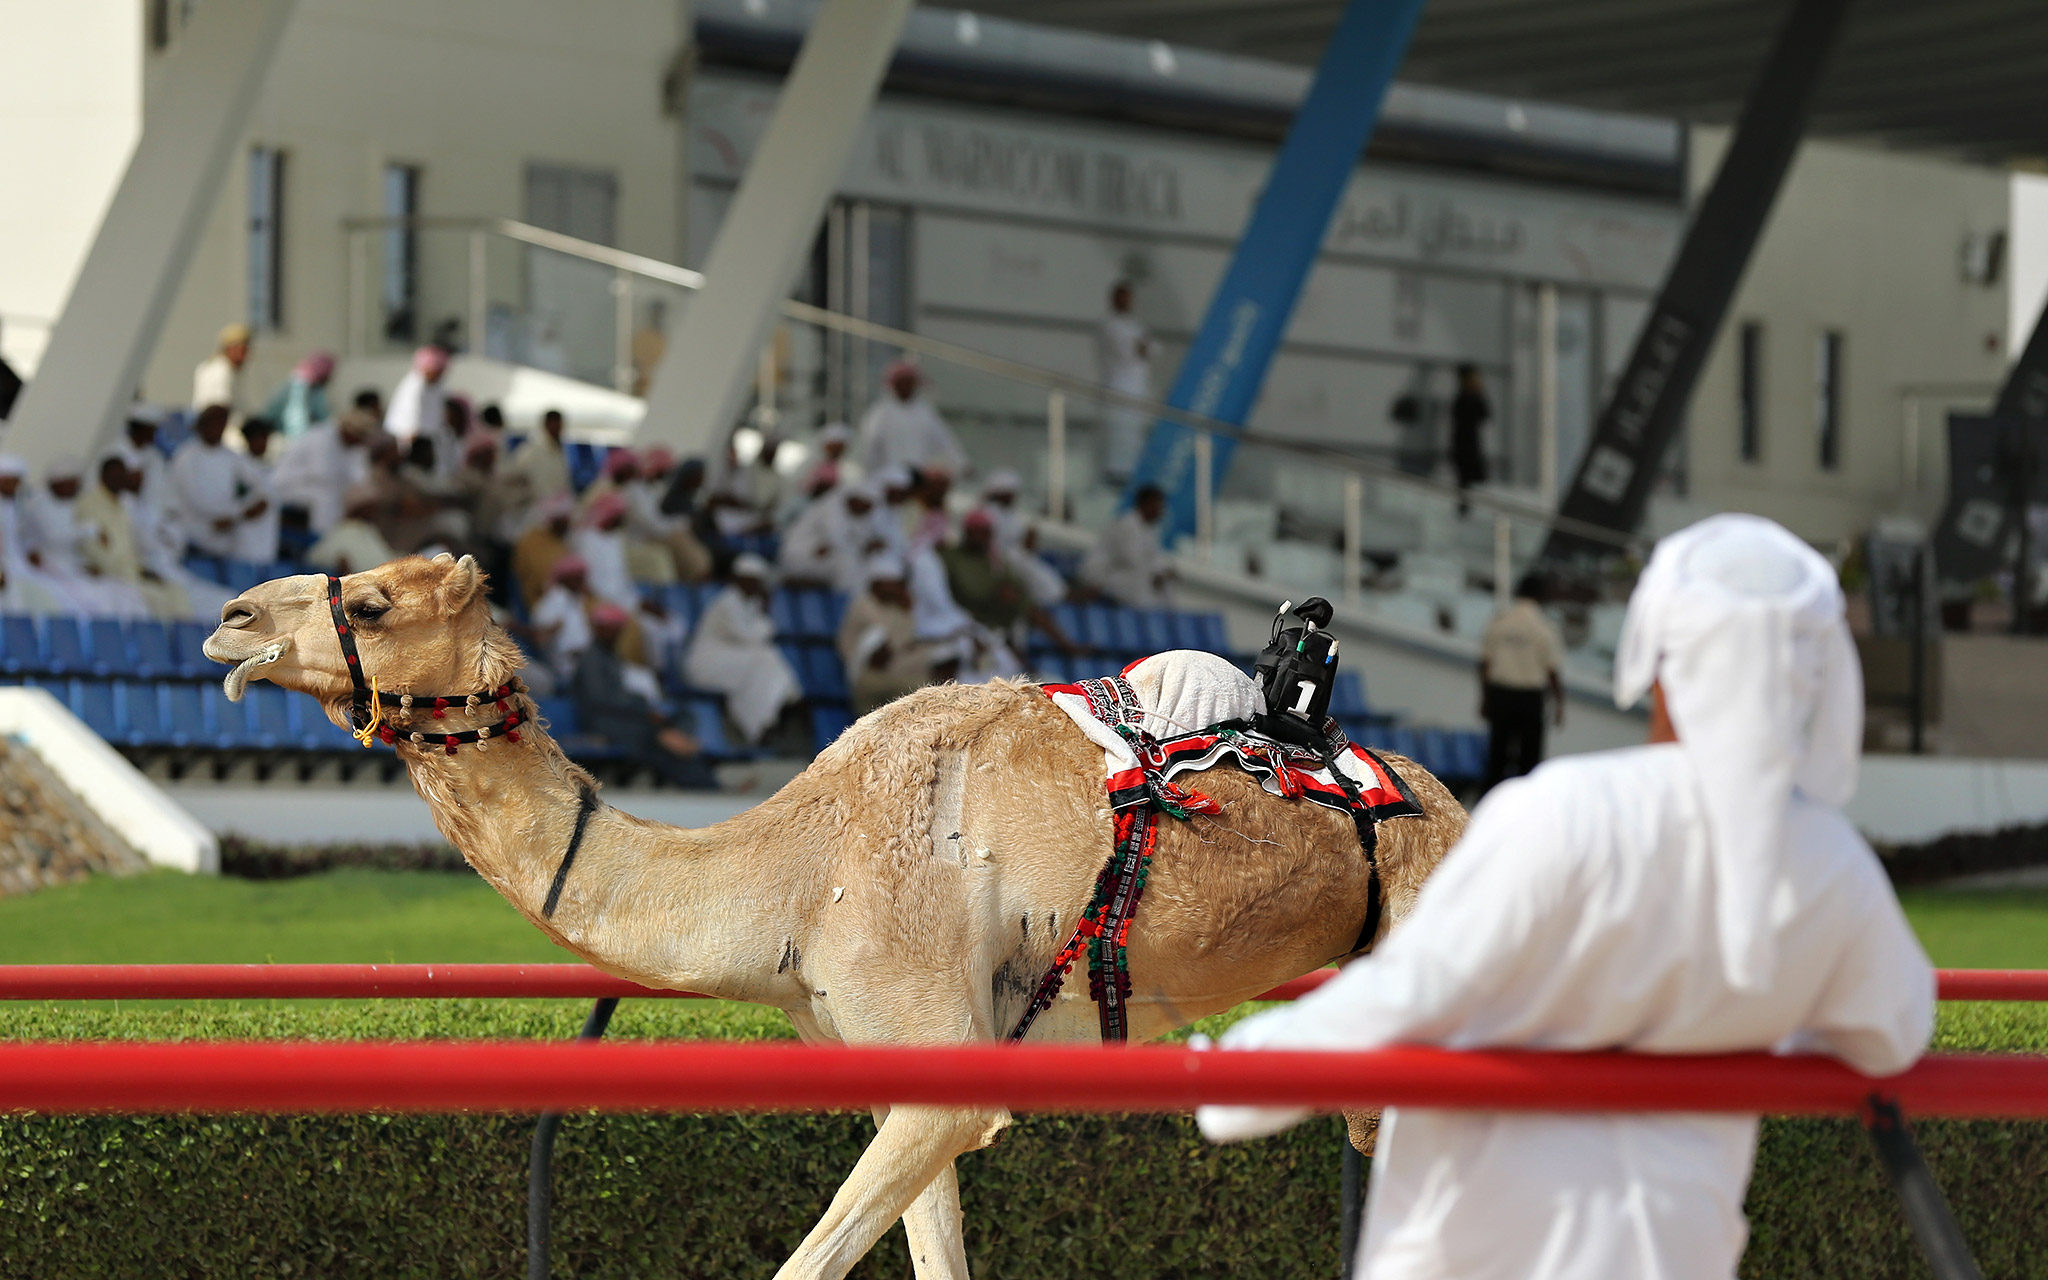 Camel At The Races